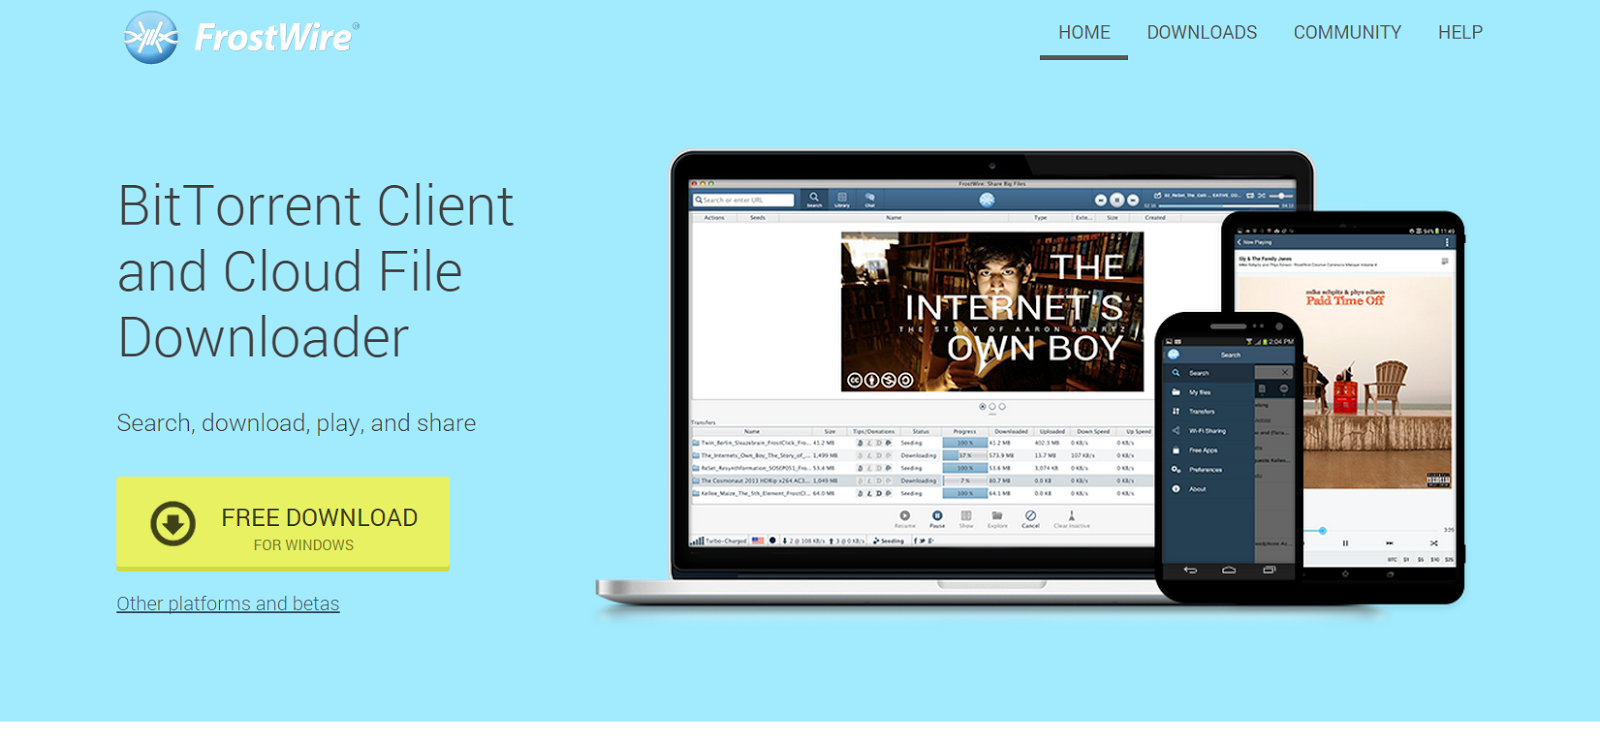 FrostWire.com - BitTorrent Client and Cloud downloader app ...